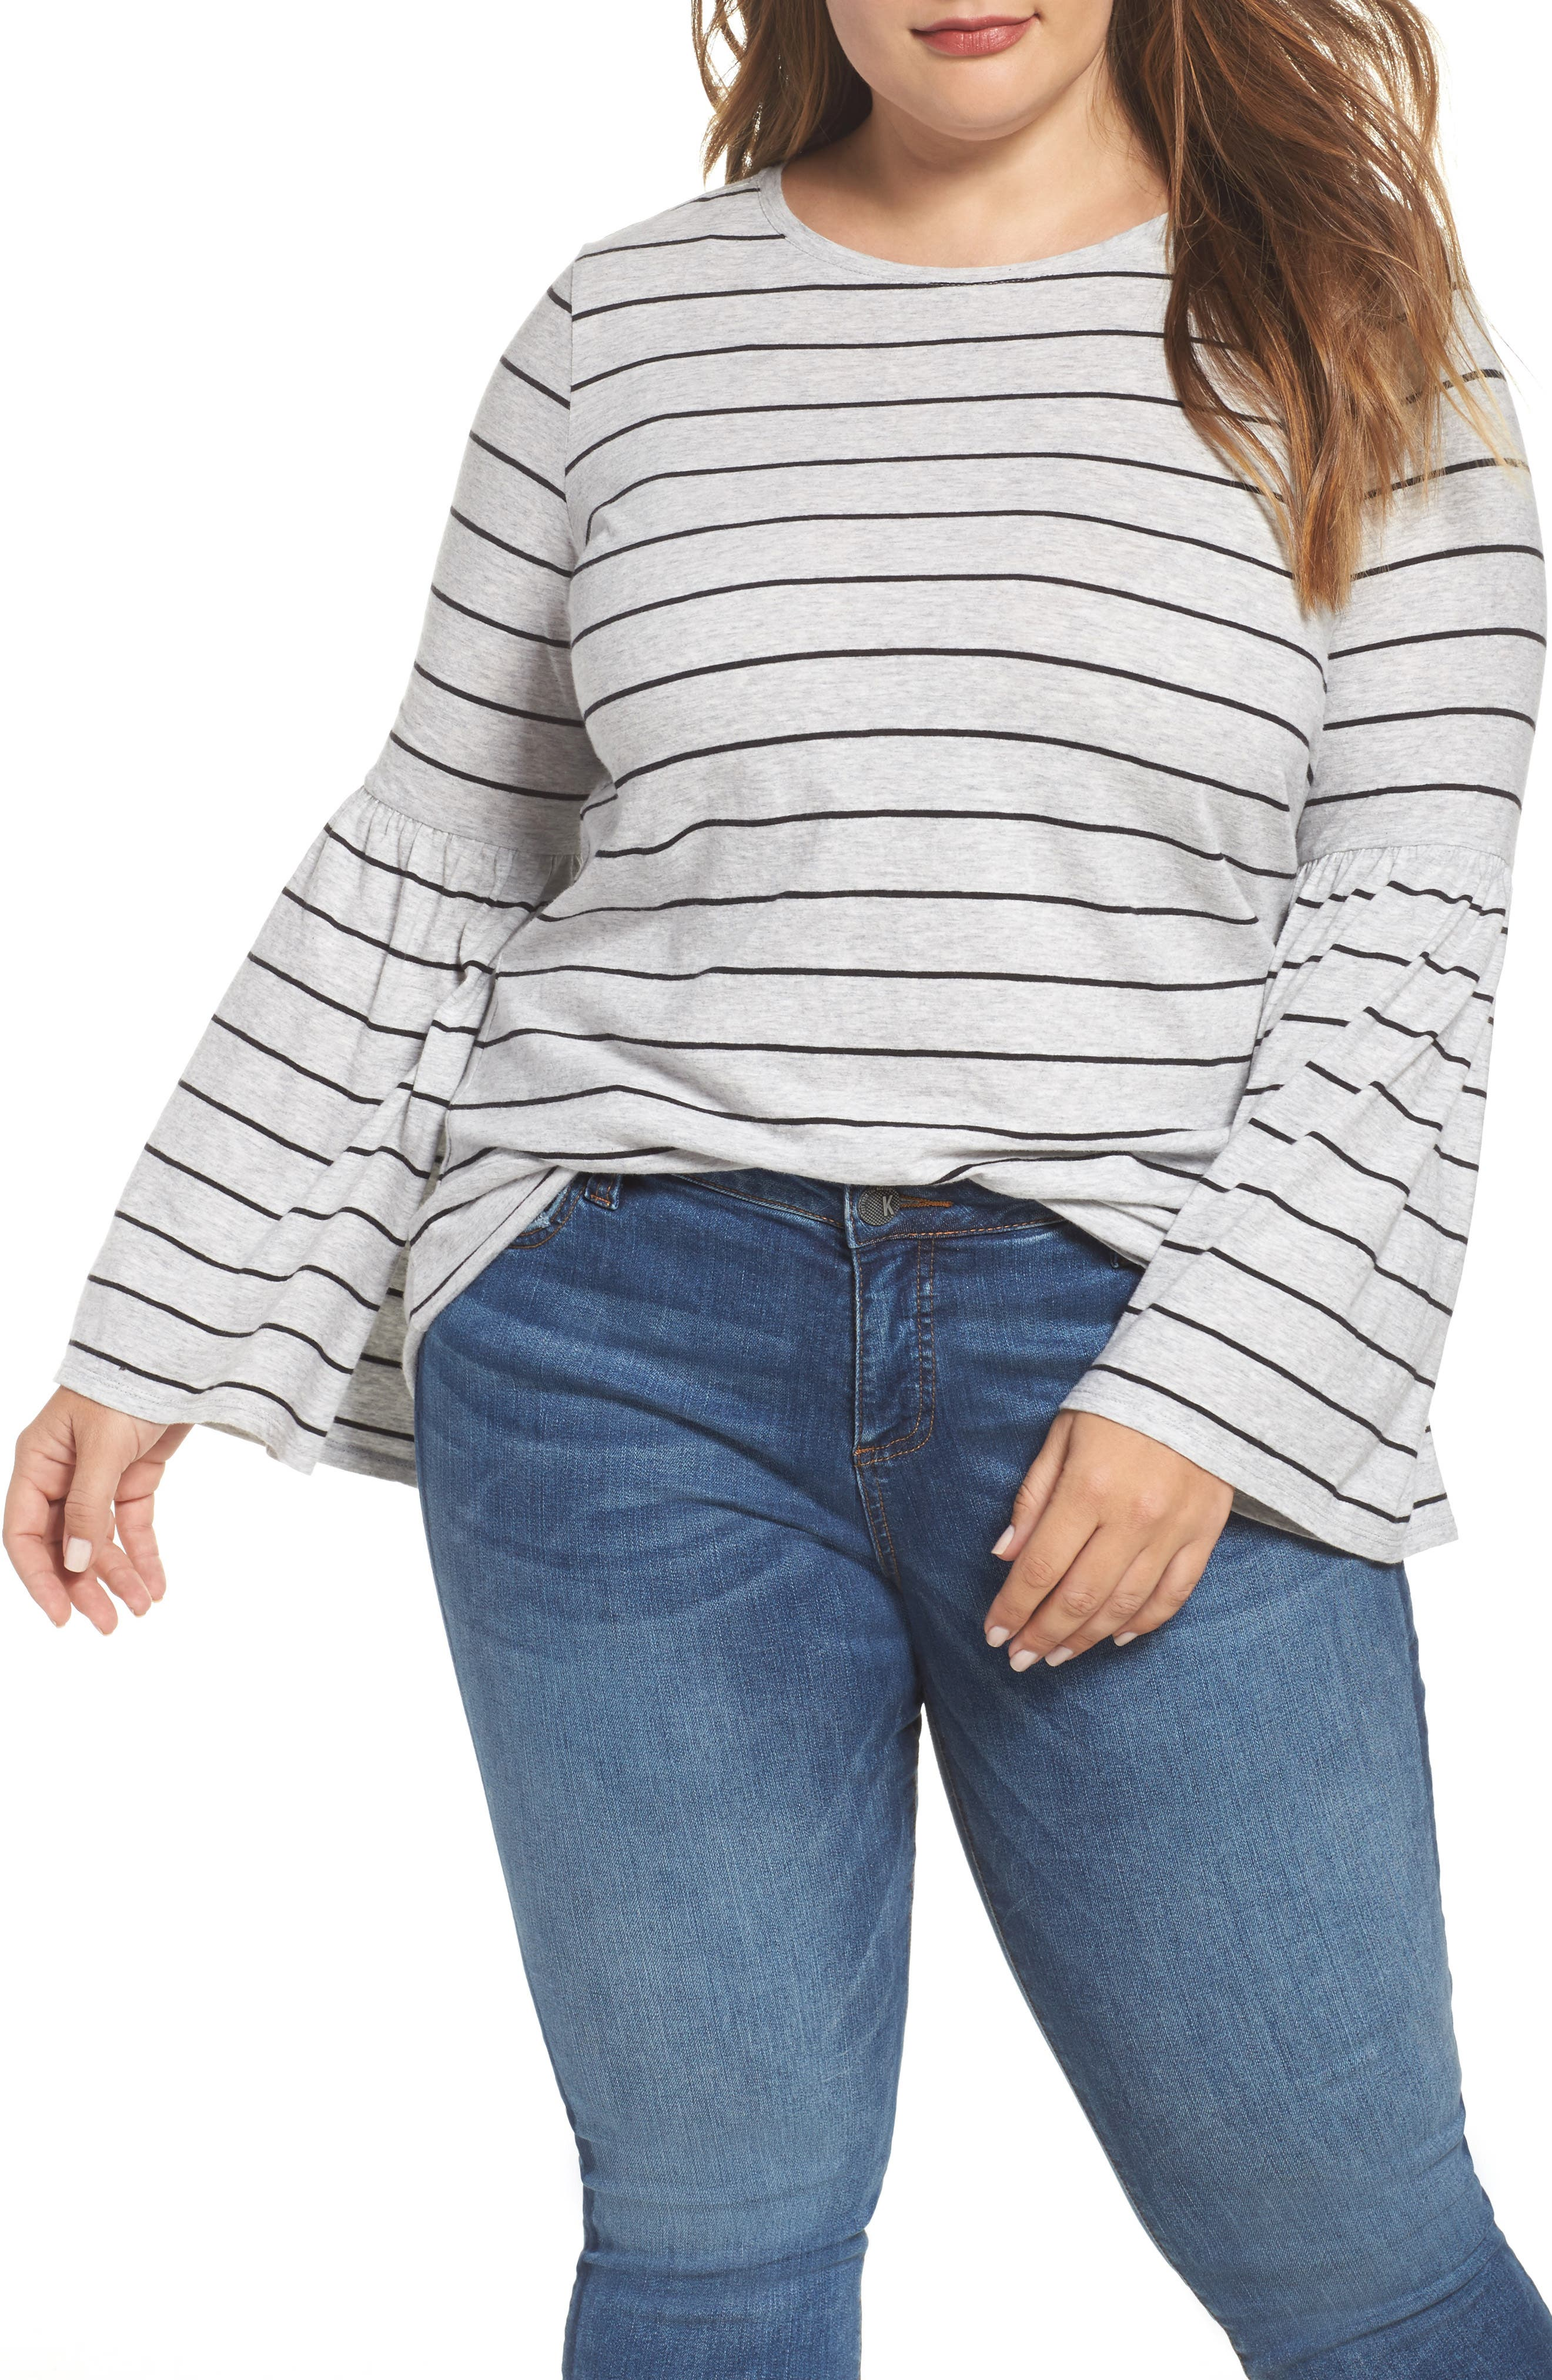 Main Image - Two by Vince Camuto Nova Stripe Bell Sleeve Top (Plus Size)